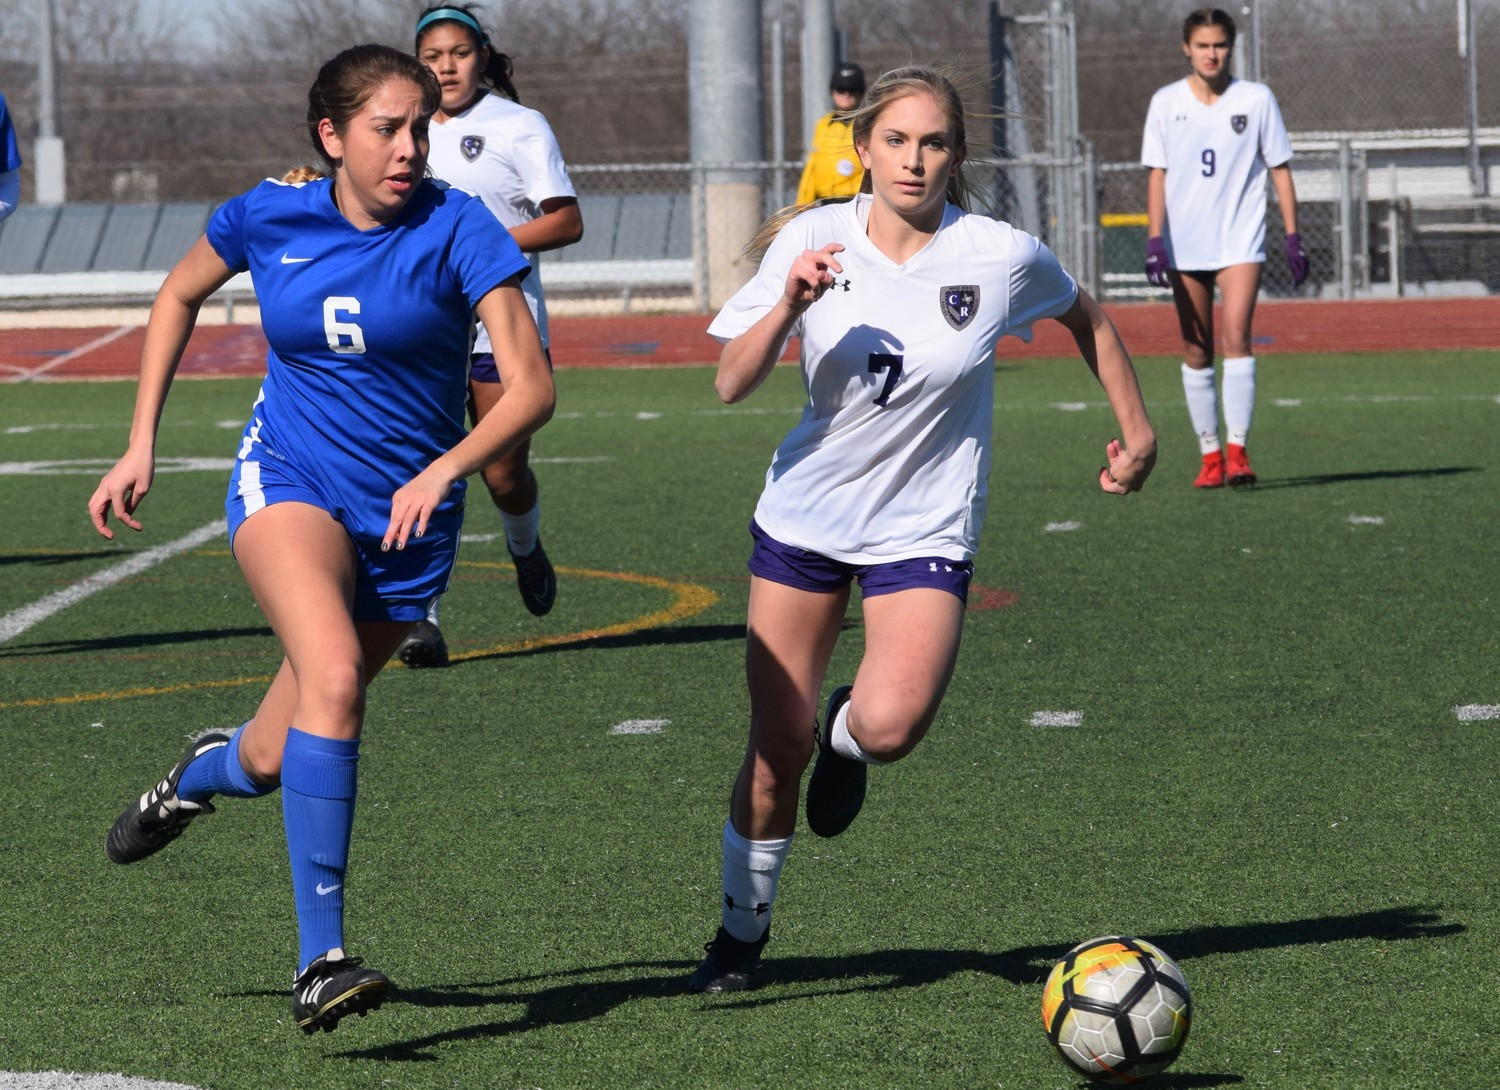 Senior Marissa Porras returned to the Leander girls' soccer team this season after spending last year with the upper-level club team.